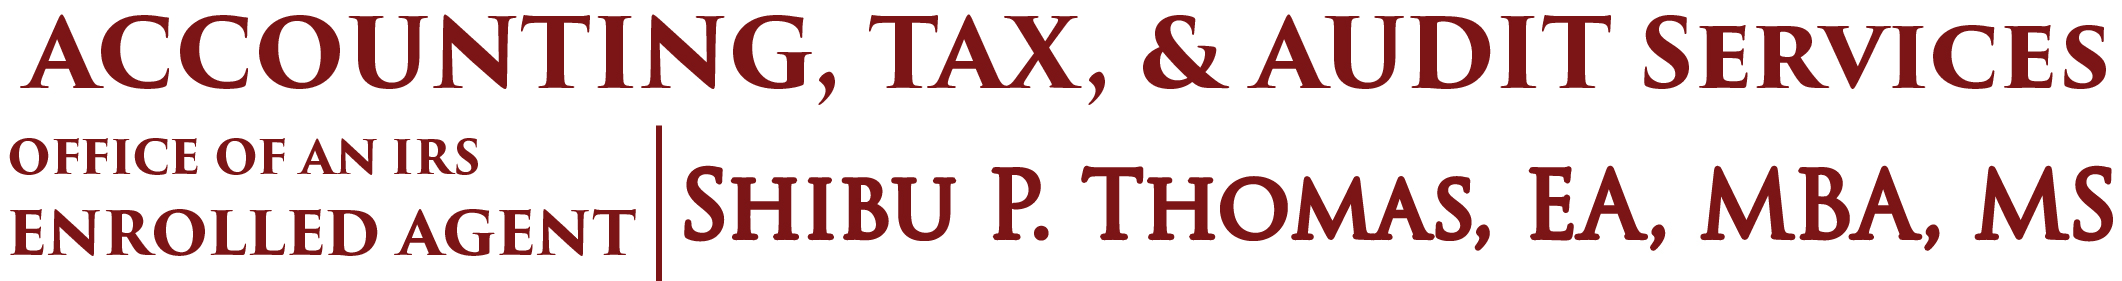 Staten Island, NY Accounting Firm | Tax Debt Resolution in Staten Island, NY Page | Accounting, Tax, & Audit Services Shibu P. Thomas, EA, MBA, MS